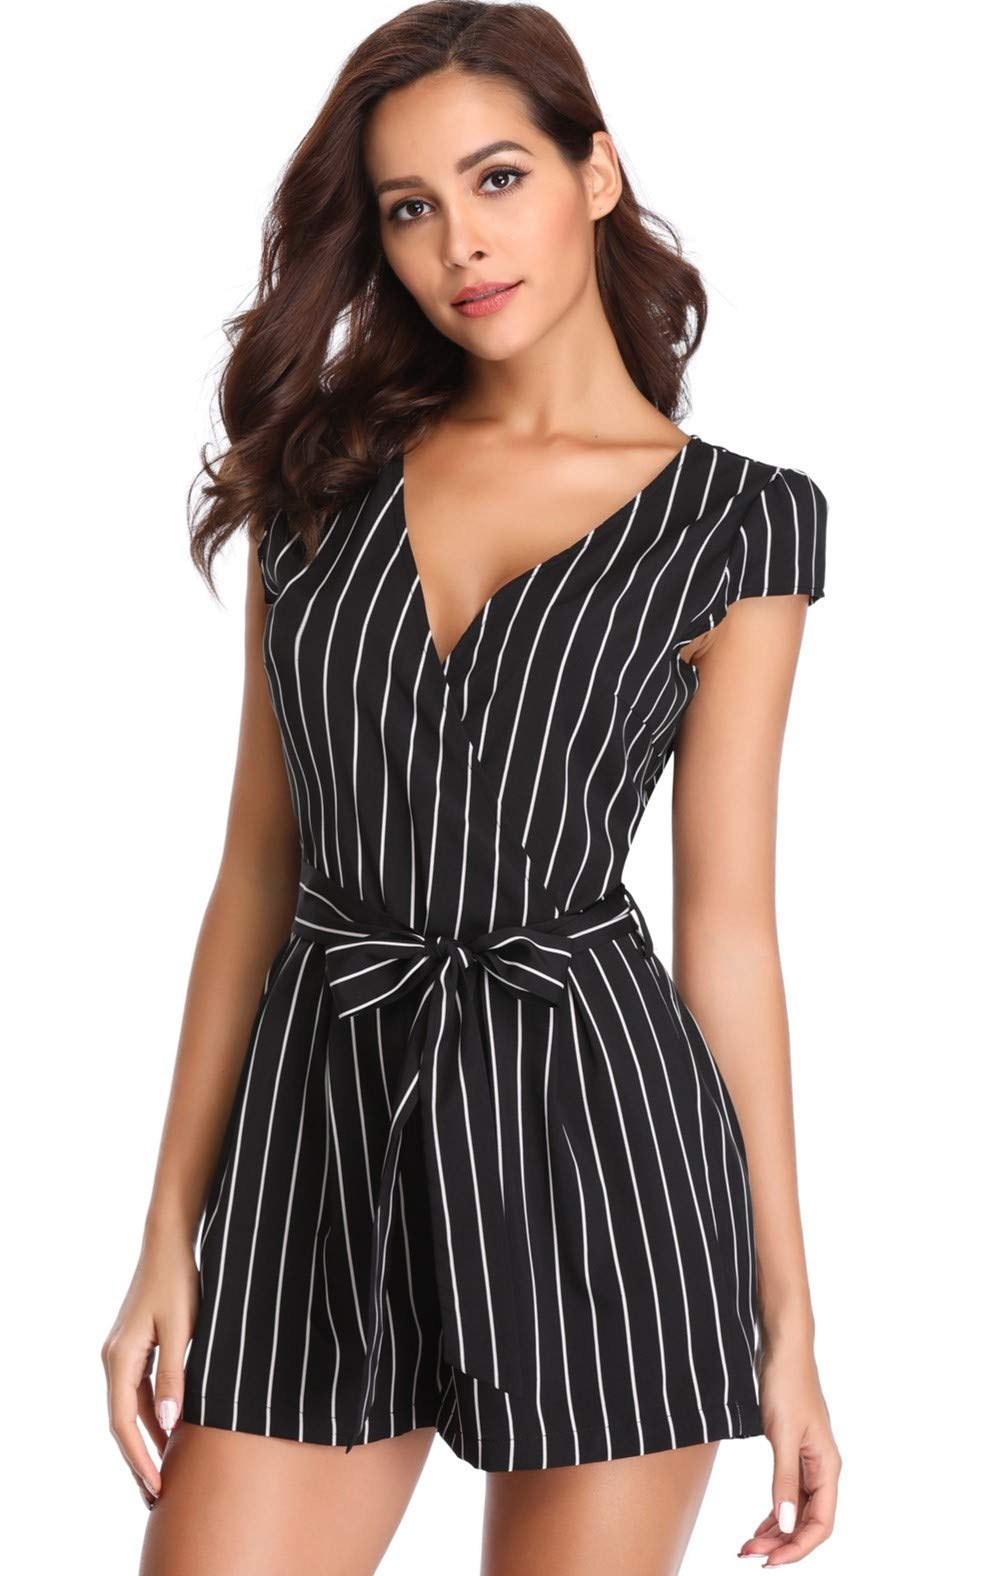 Rompers for Women Vertical Striped V Neck Cap Sleeve Short Jumpsuits with Belt